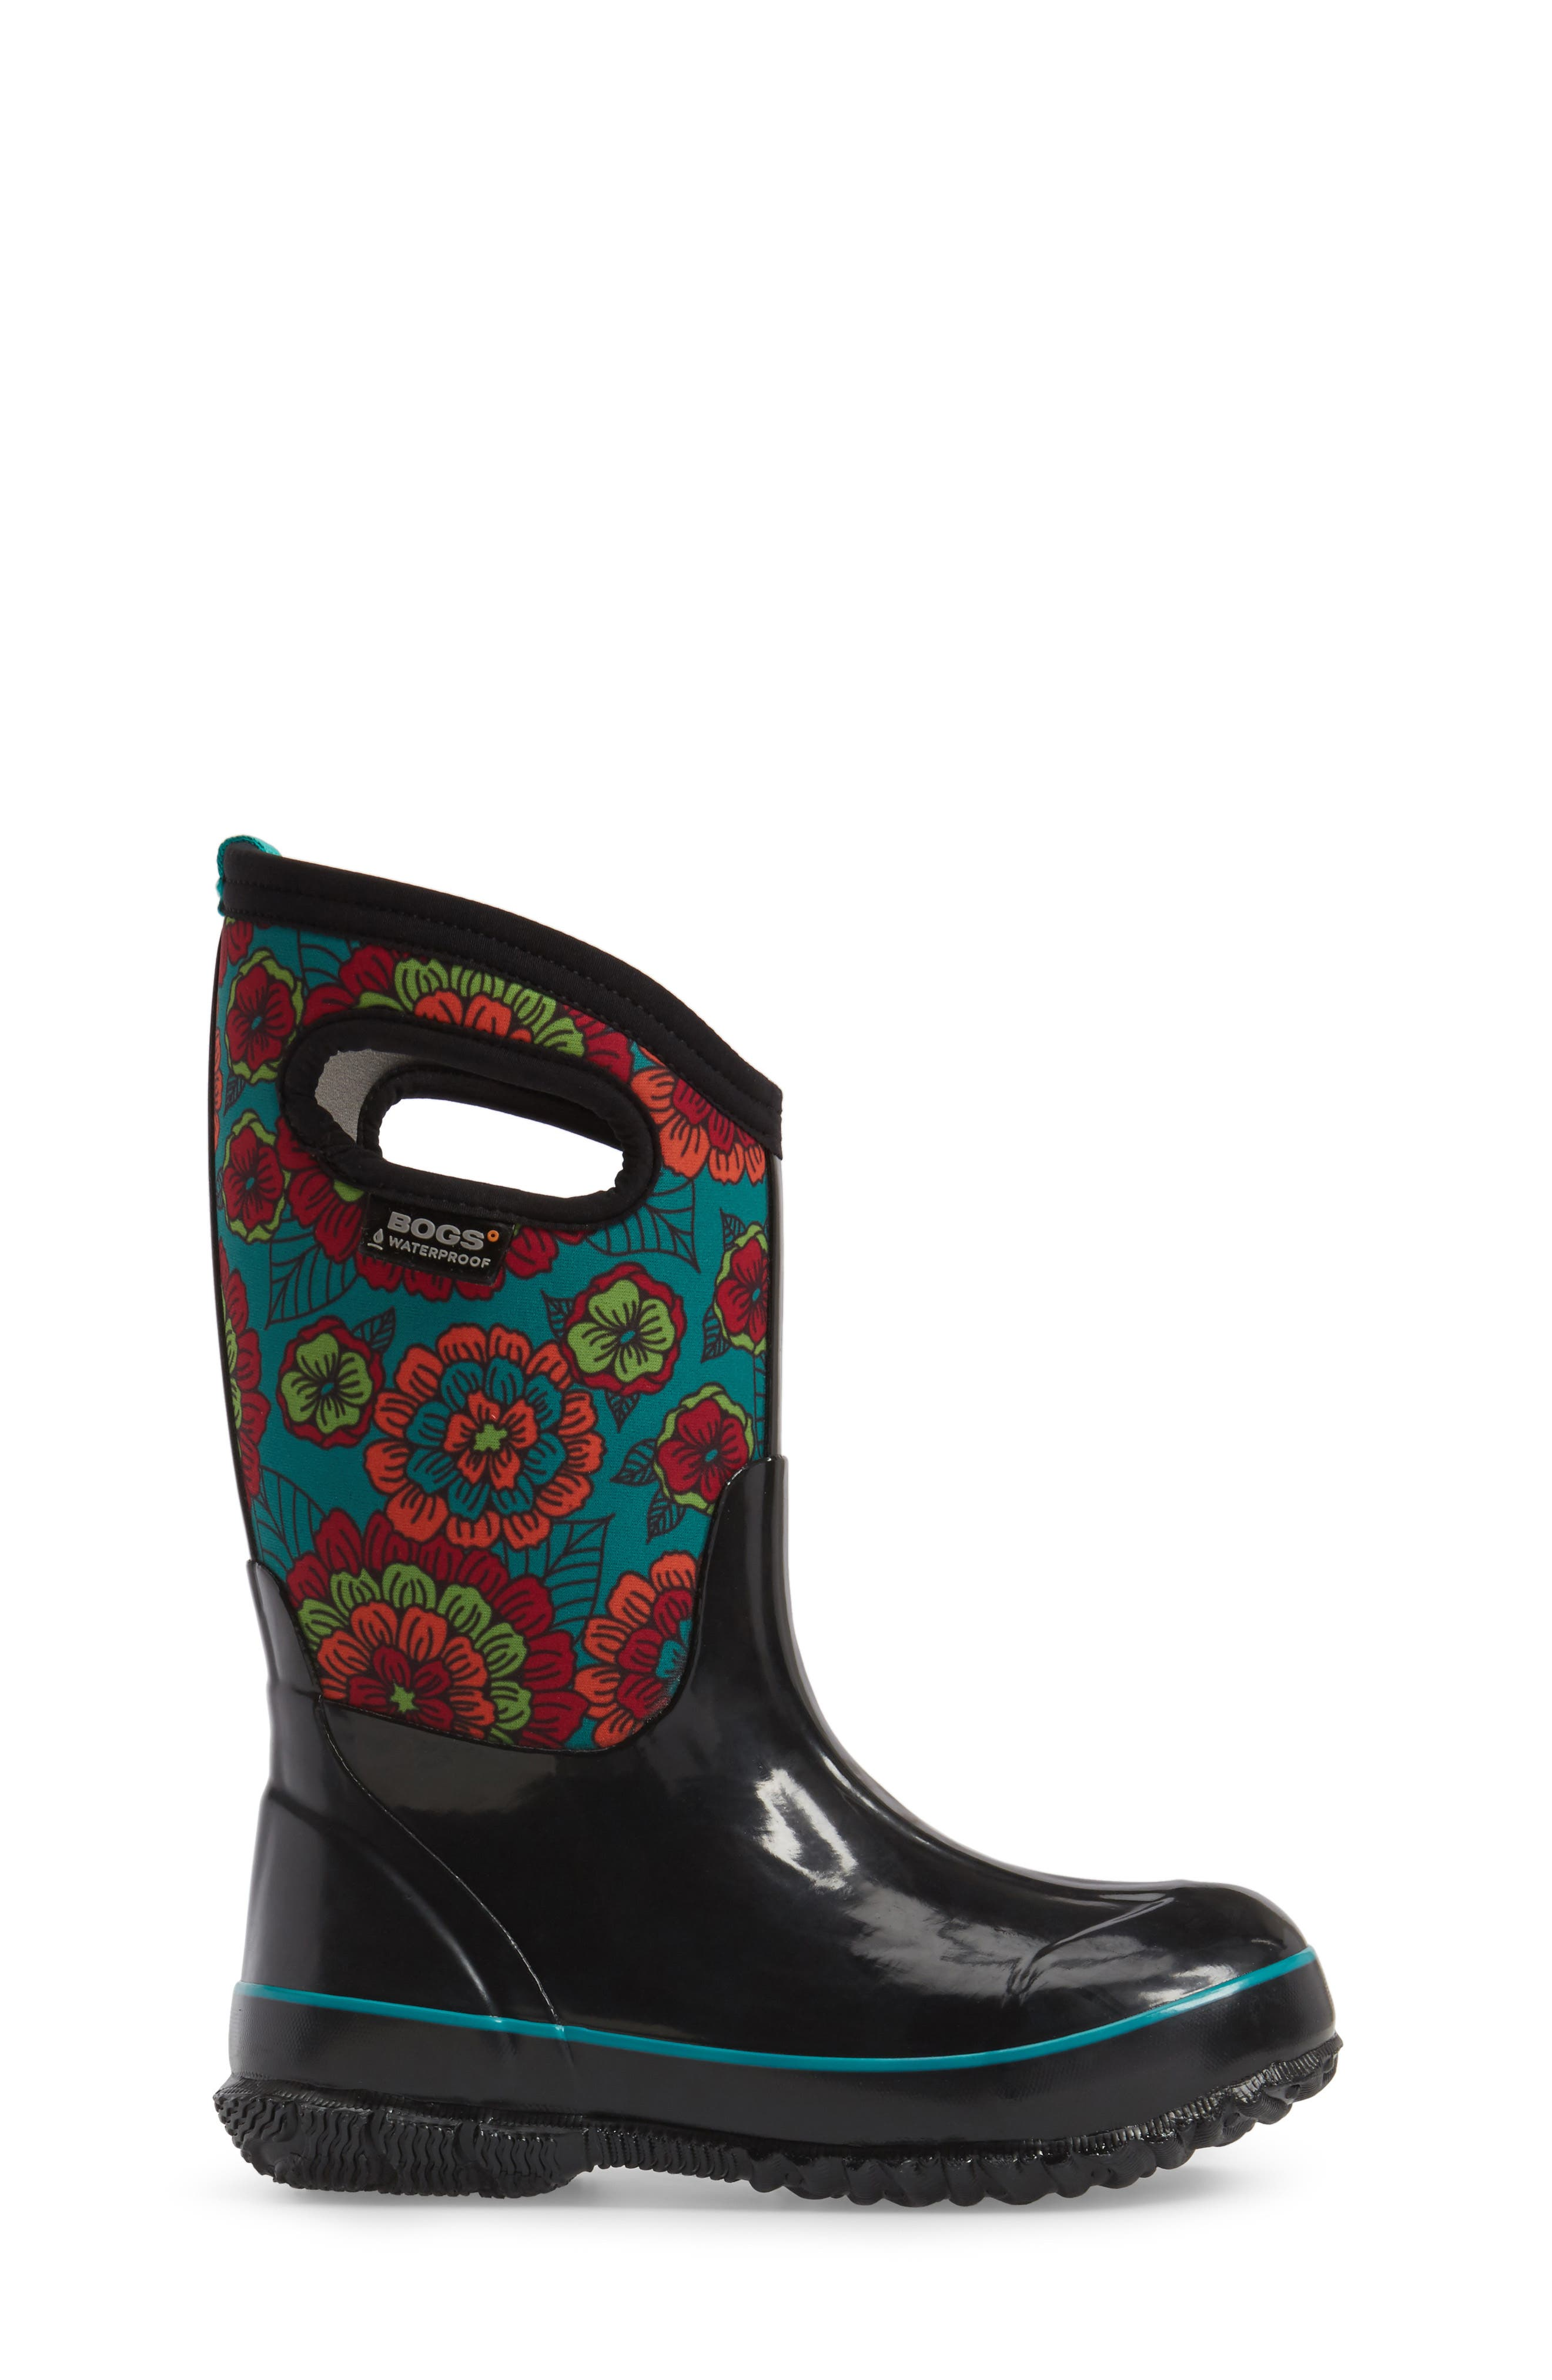 BOGS, Classic Pansies Insulated Waterproof Rain Boot, Alternate thumbnail 3, color, 005